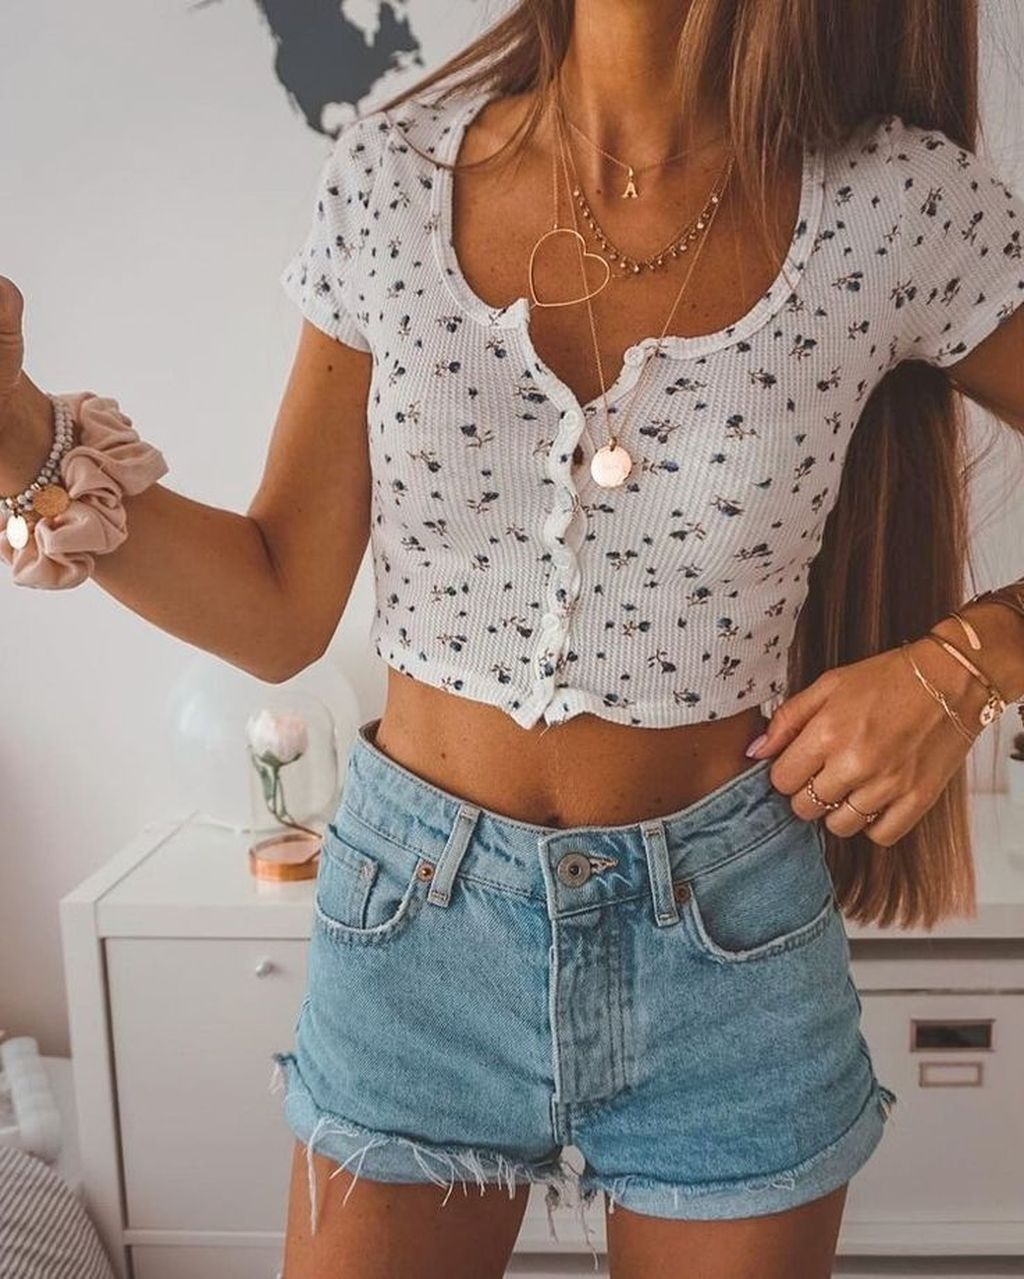 Photo of 43 The hottest denim summer outfits ideas to inspire yourself